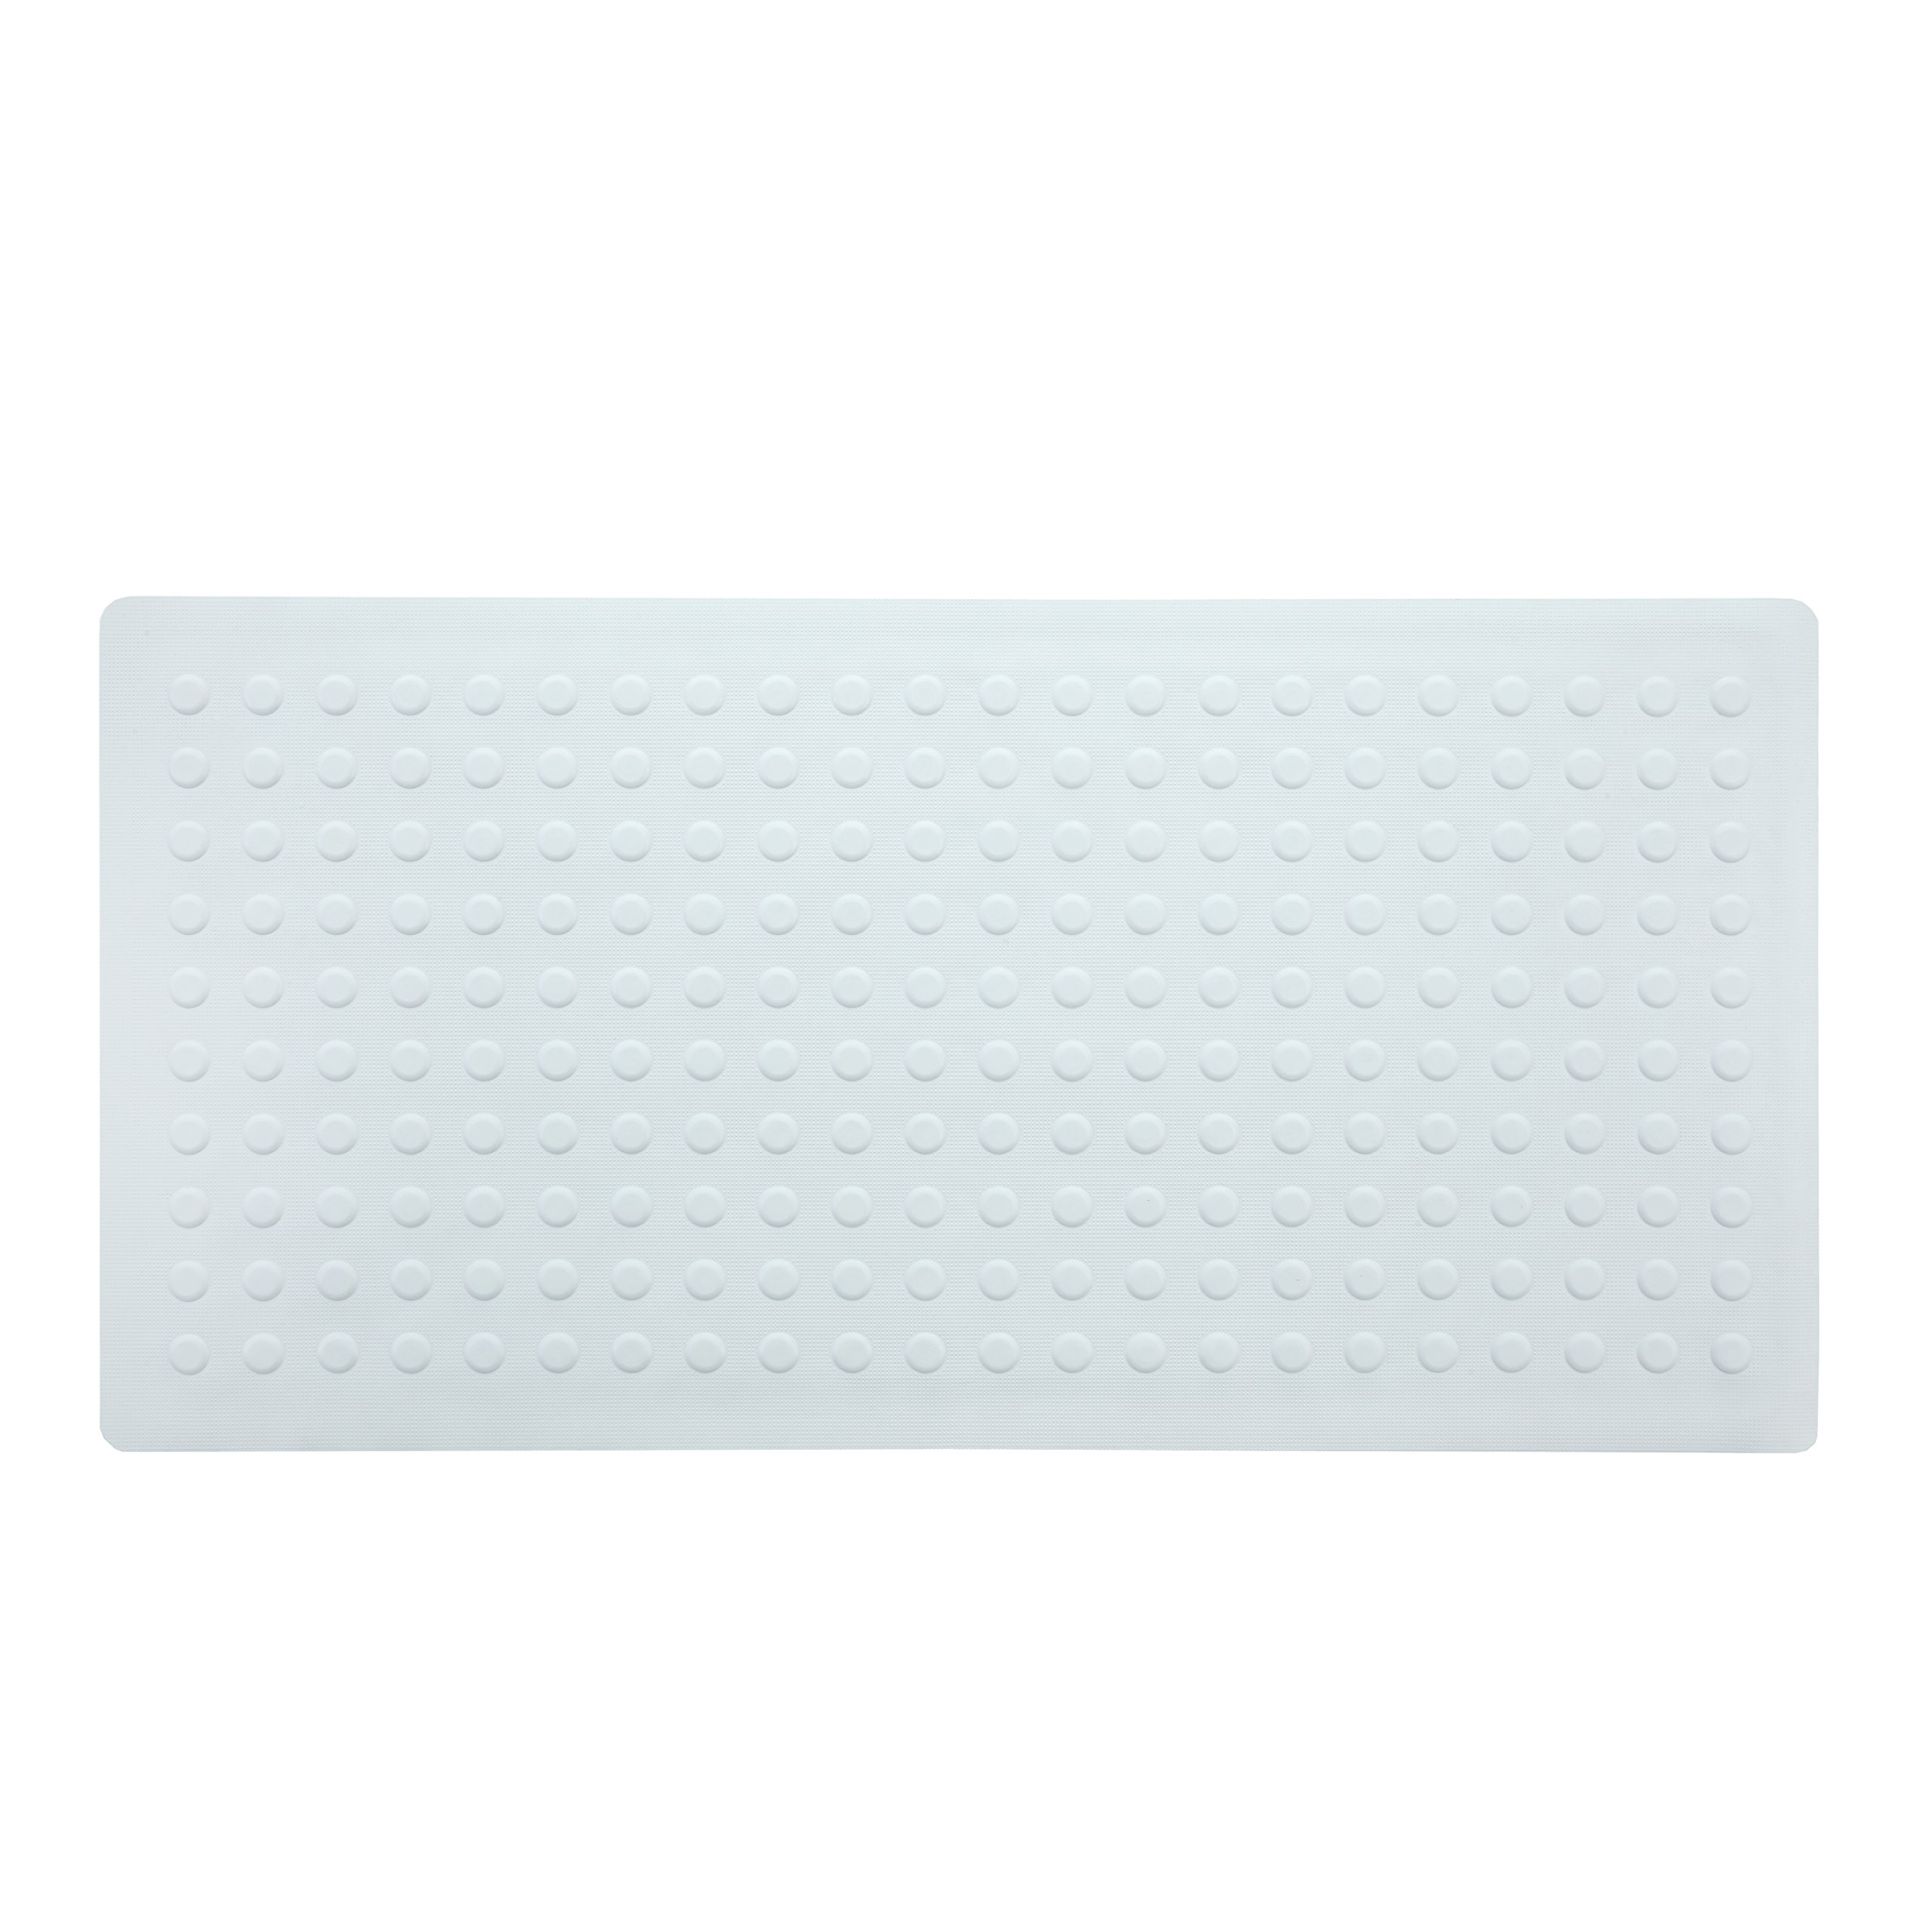 SlipX Solutions Mildew Resistant White Extra Long Rubber Bath Safety Mat Features Powerful Microban Antimicrobial Product Protection (220 Suction Cups, 36'' Long, Great Non-Slip Coverage)